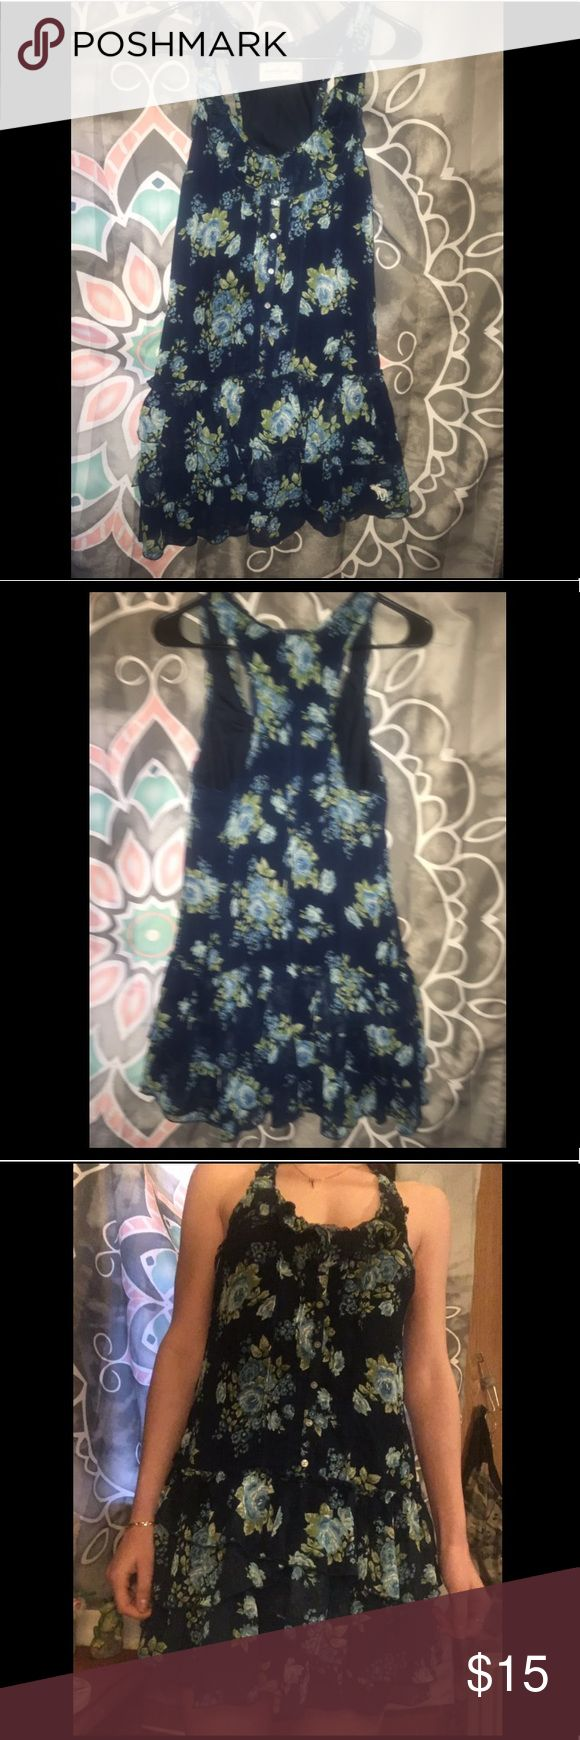 Abercrombie and Fitch Dress I work this one time and it's just been sitting in my closet since. It is designed to look like a skirt and shirt and has a beautiful floral design. Abercrombie & Fitch Dresses Mini